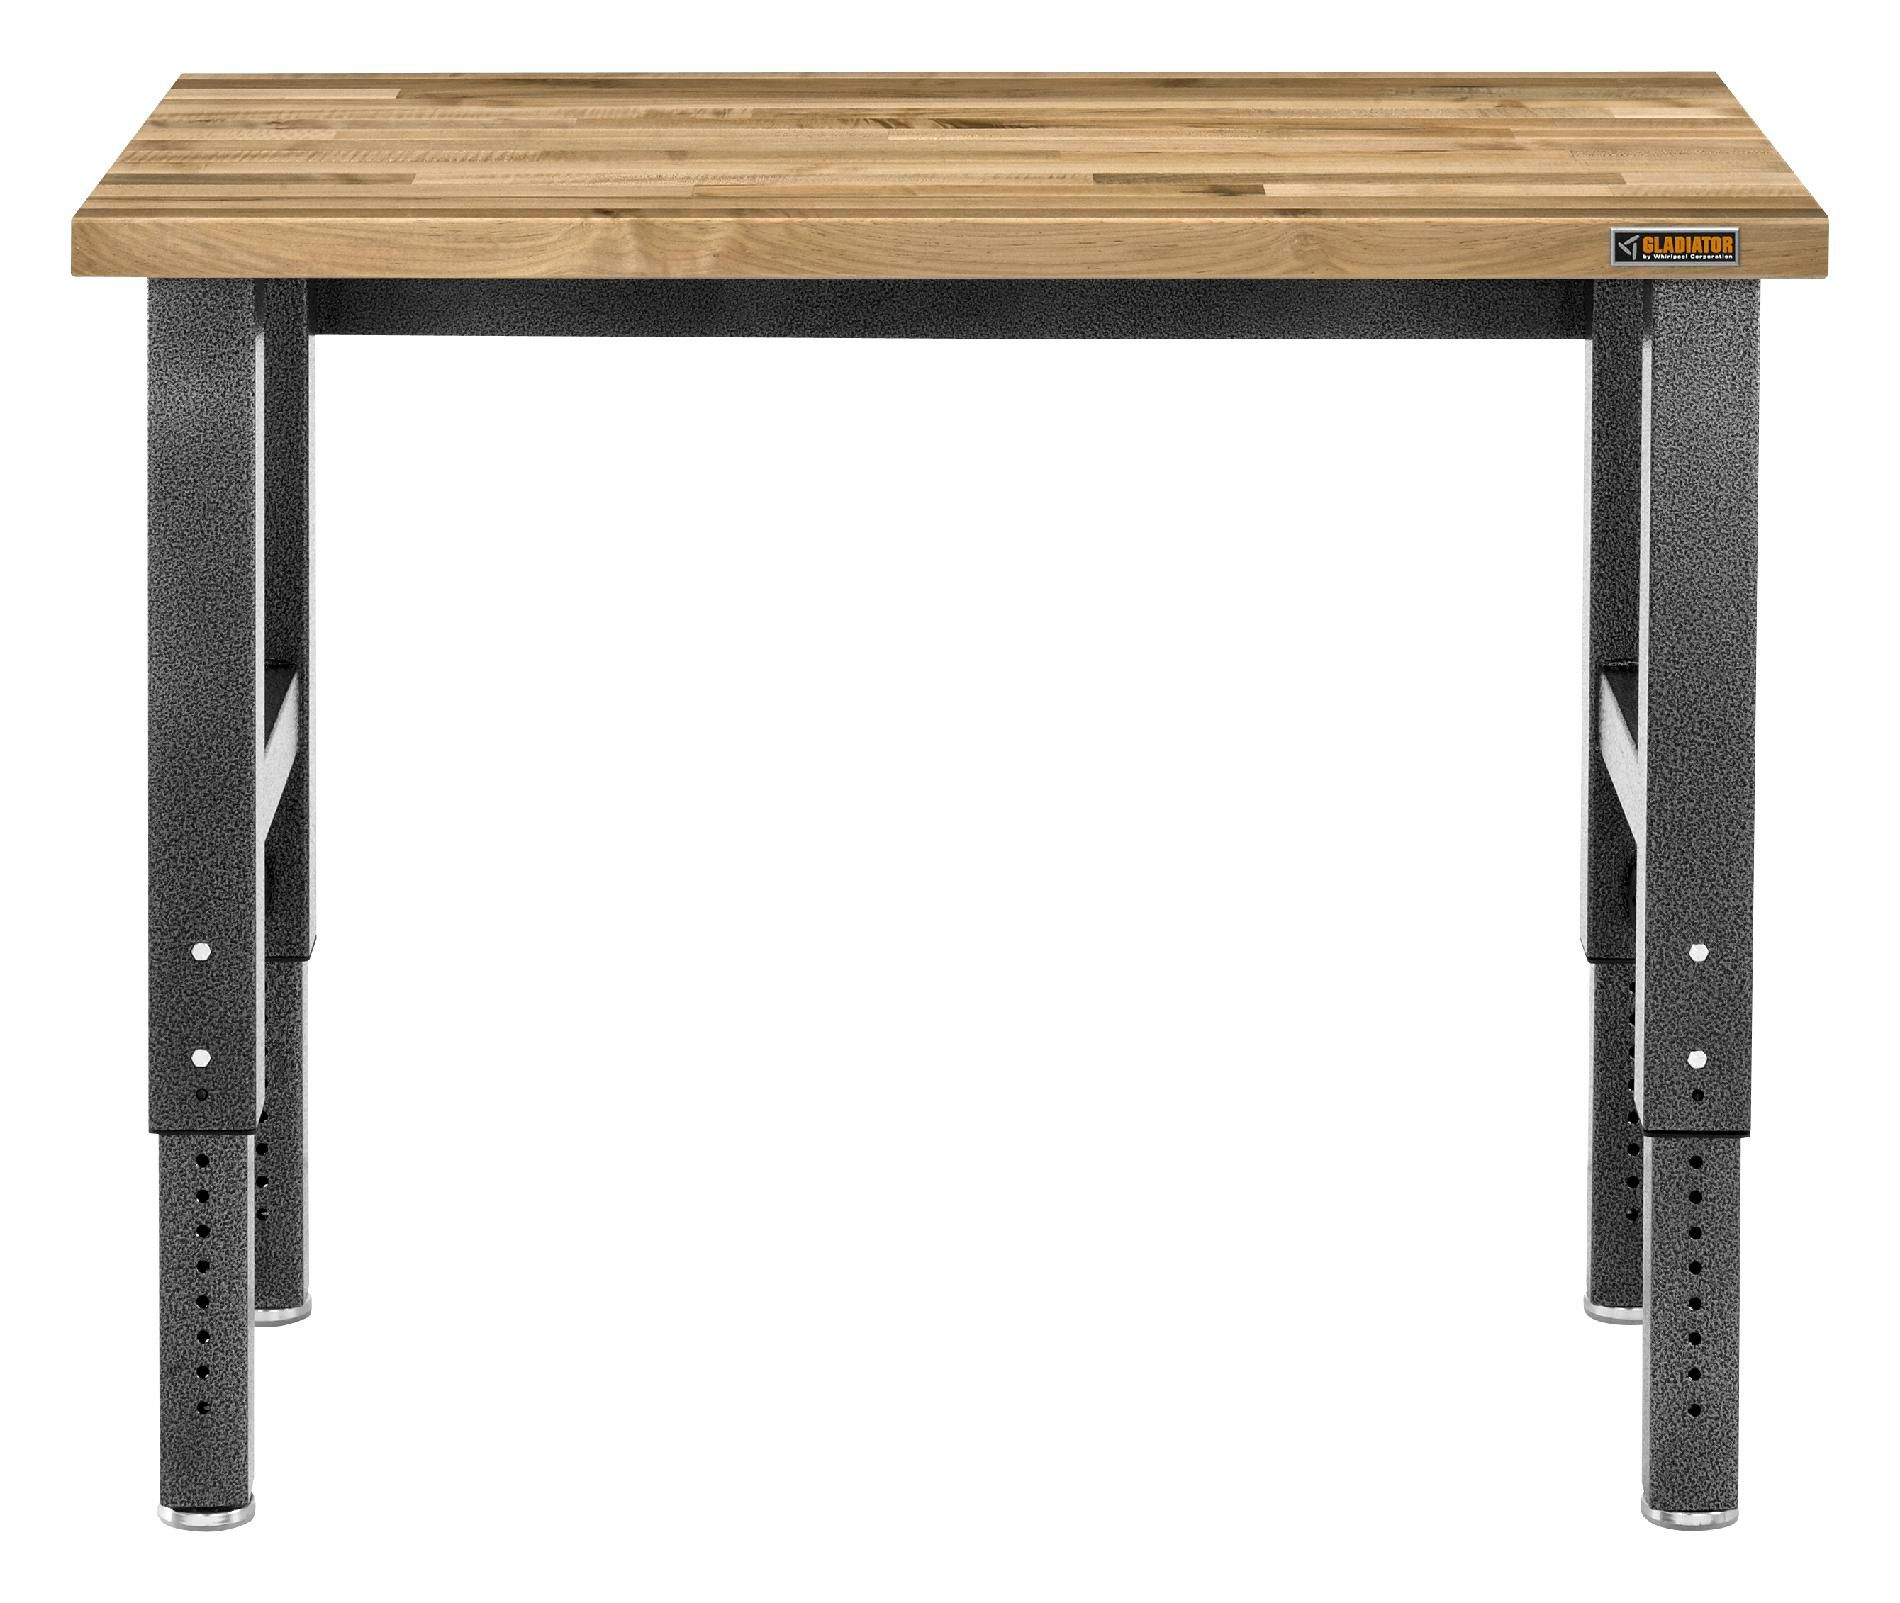 Gladiator Gladiator Premier Series 42 in. H x 48 in. W x 25 in. D Maple Top Adjustable Height Workbench in Hammered Granite